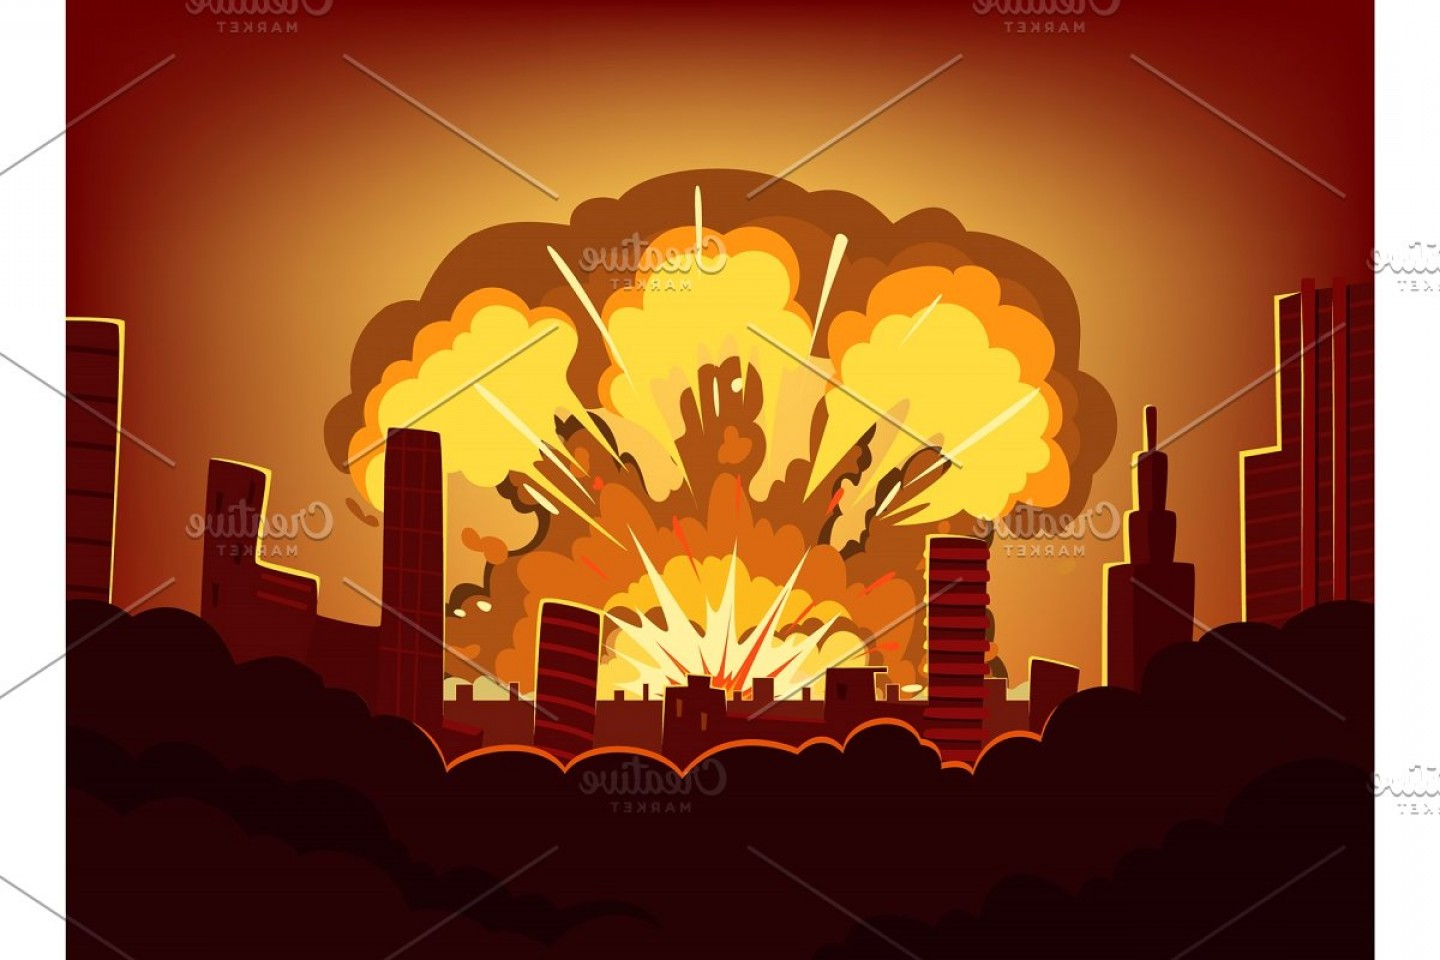 Atomic Bomb Explosion Vector: War And Damages After Big Explosion In The City